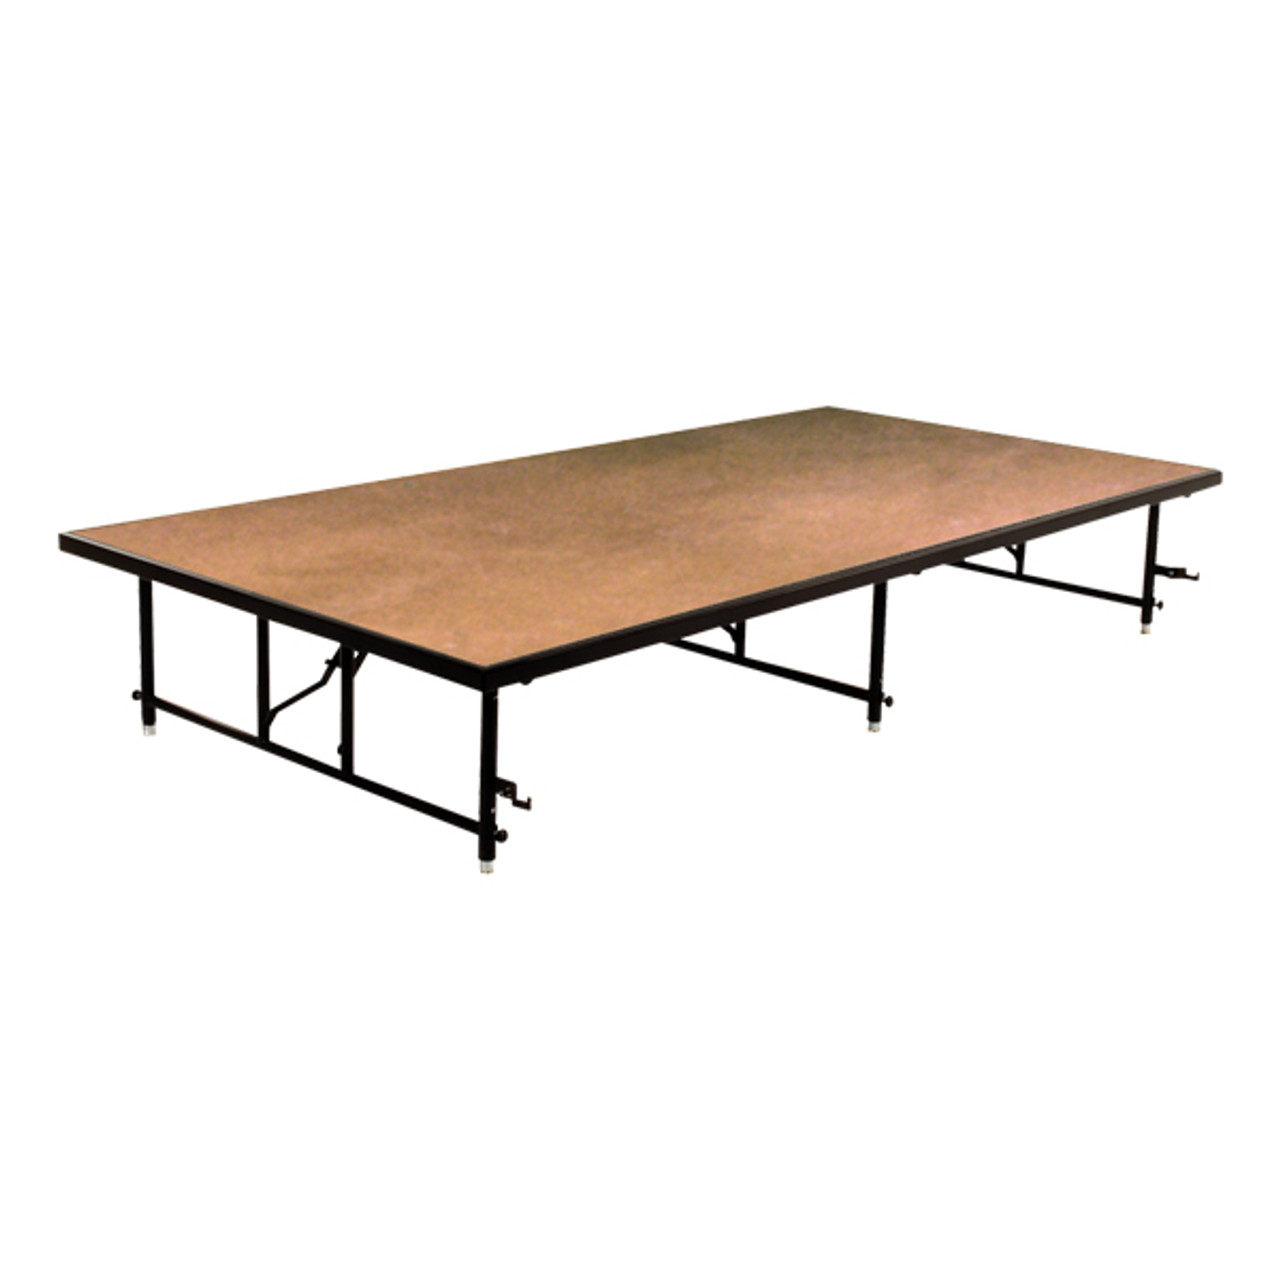 Ta4816h Adjustable Hardboard Deck Rectangle Portable Stage L Affordable Stages Midwest Products